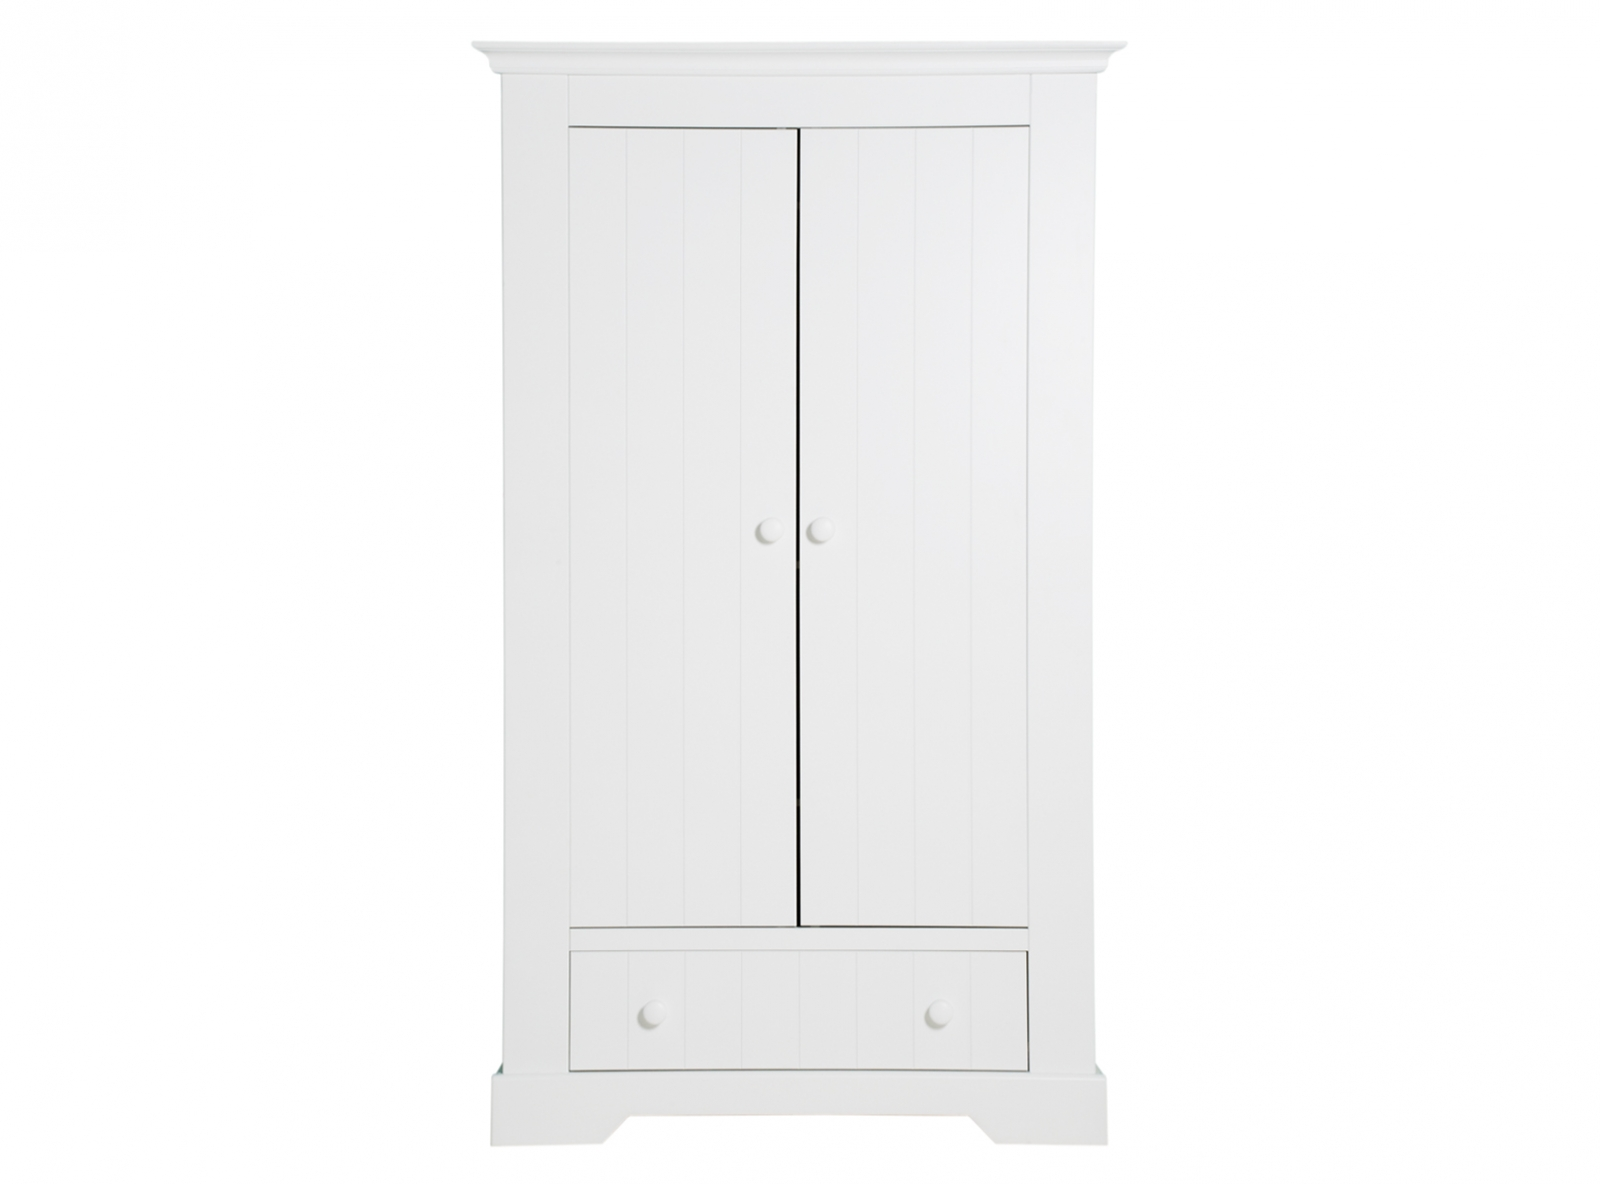 Bopita Narbonne 2-Doors Wardrobe With Drawer